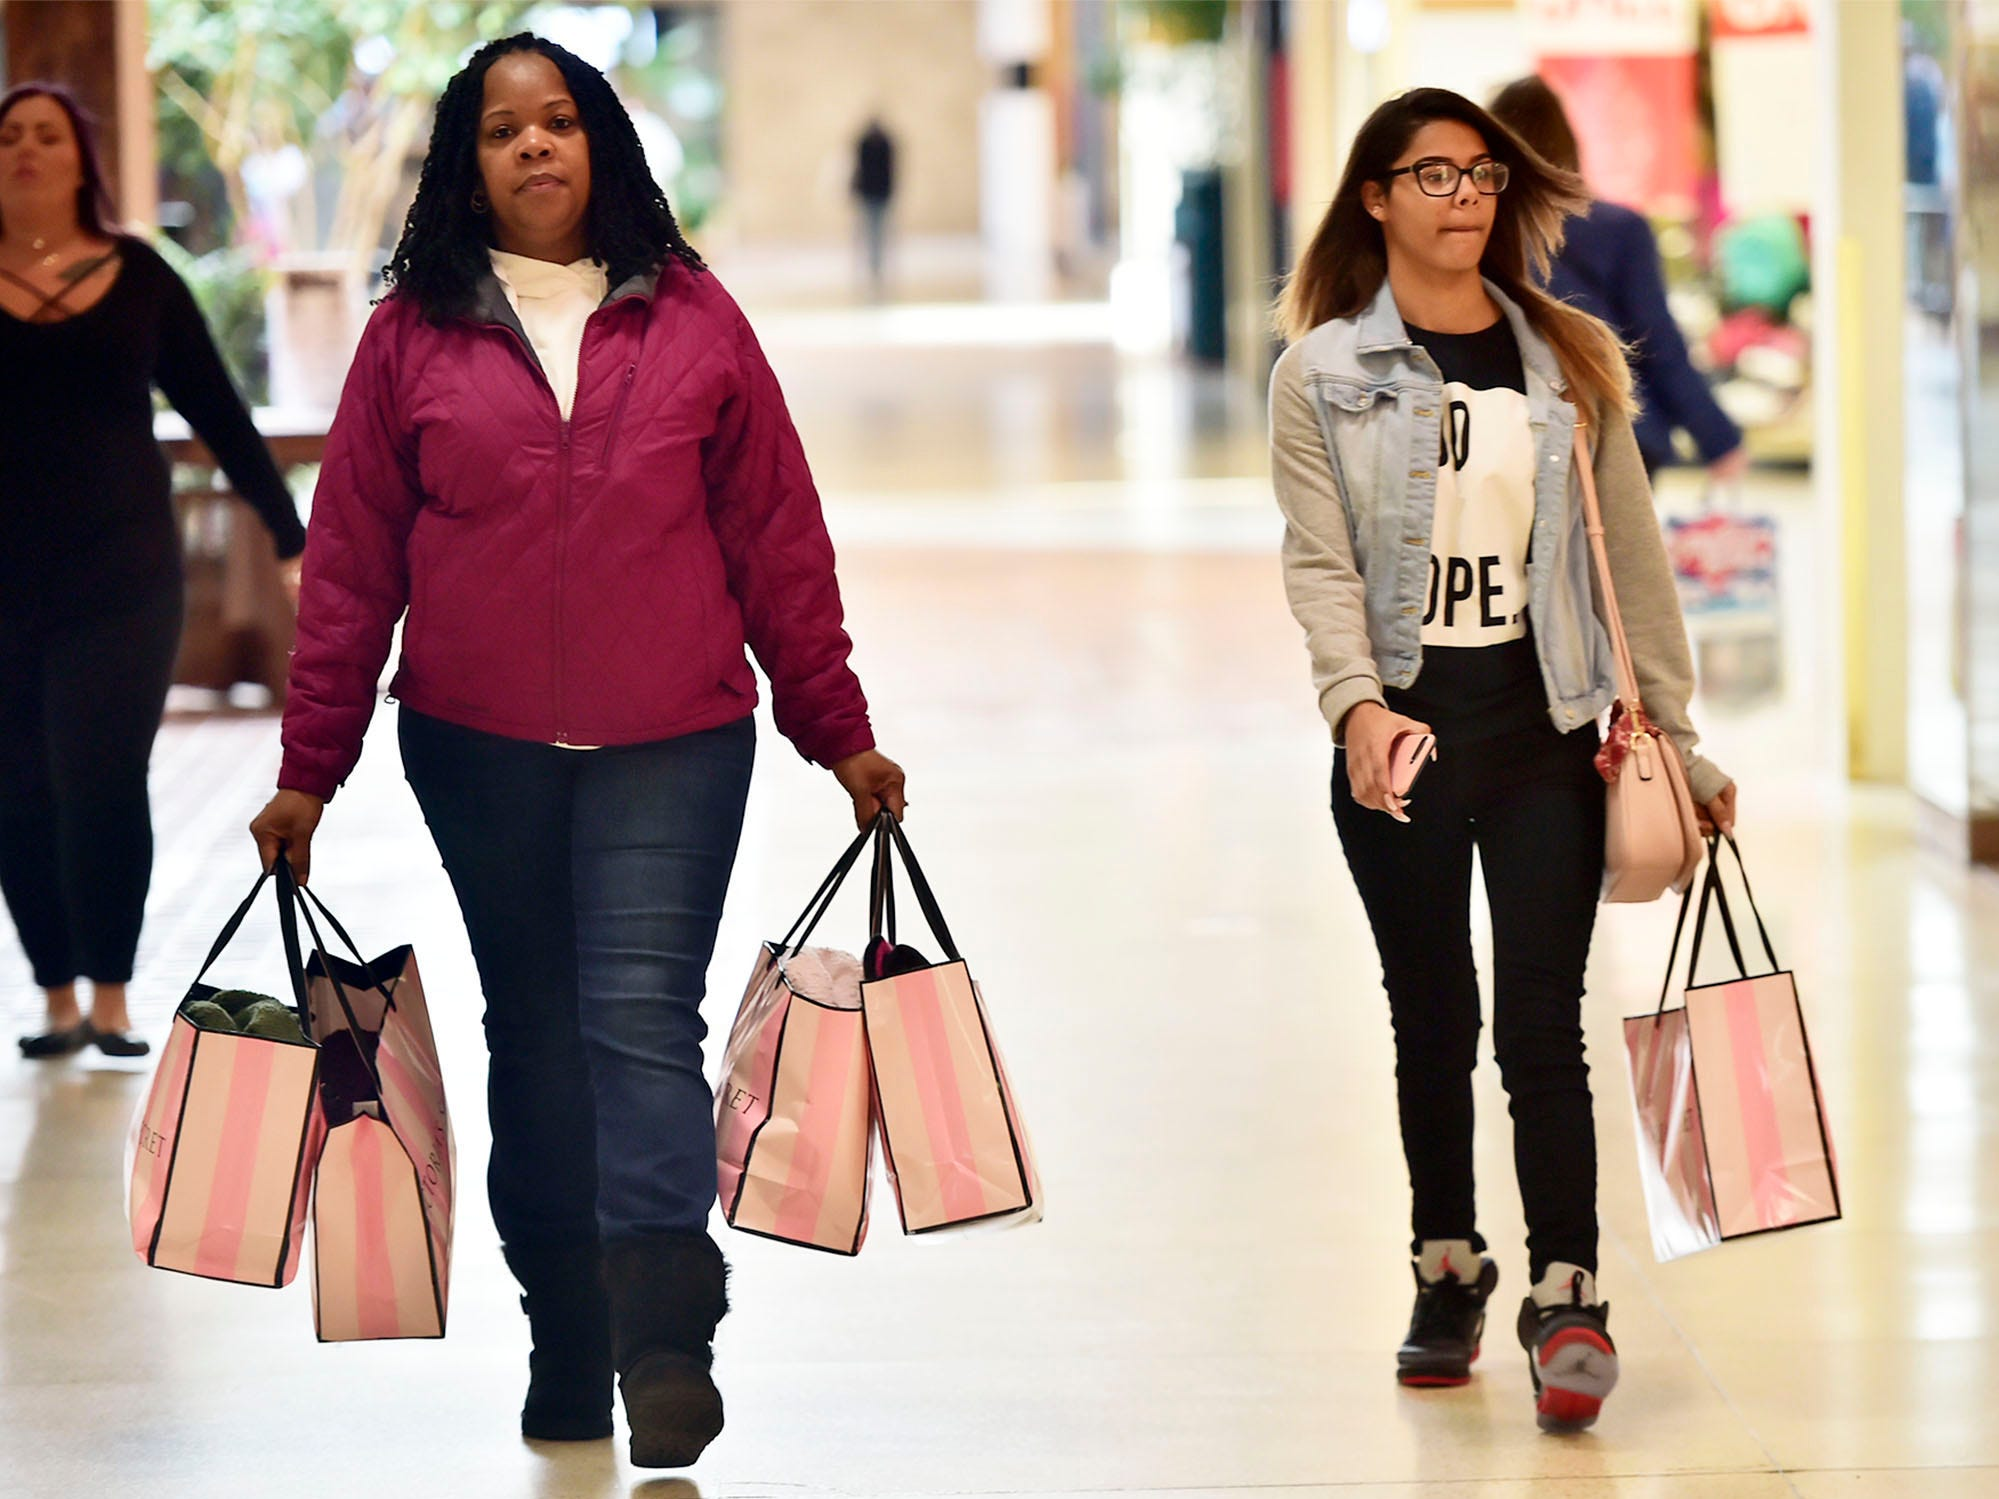 Valarie Johnson, left, shops with her niece, Katora Walker, at Chambersburg Mall on Friday, November 23, 2018. Shoppers were at the malls and stores looking for great deals on Black Friday.